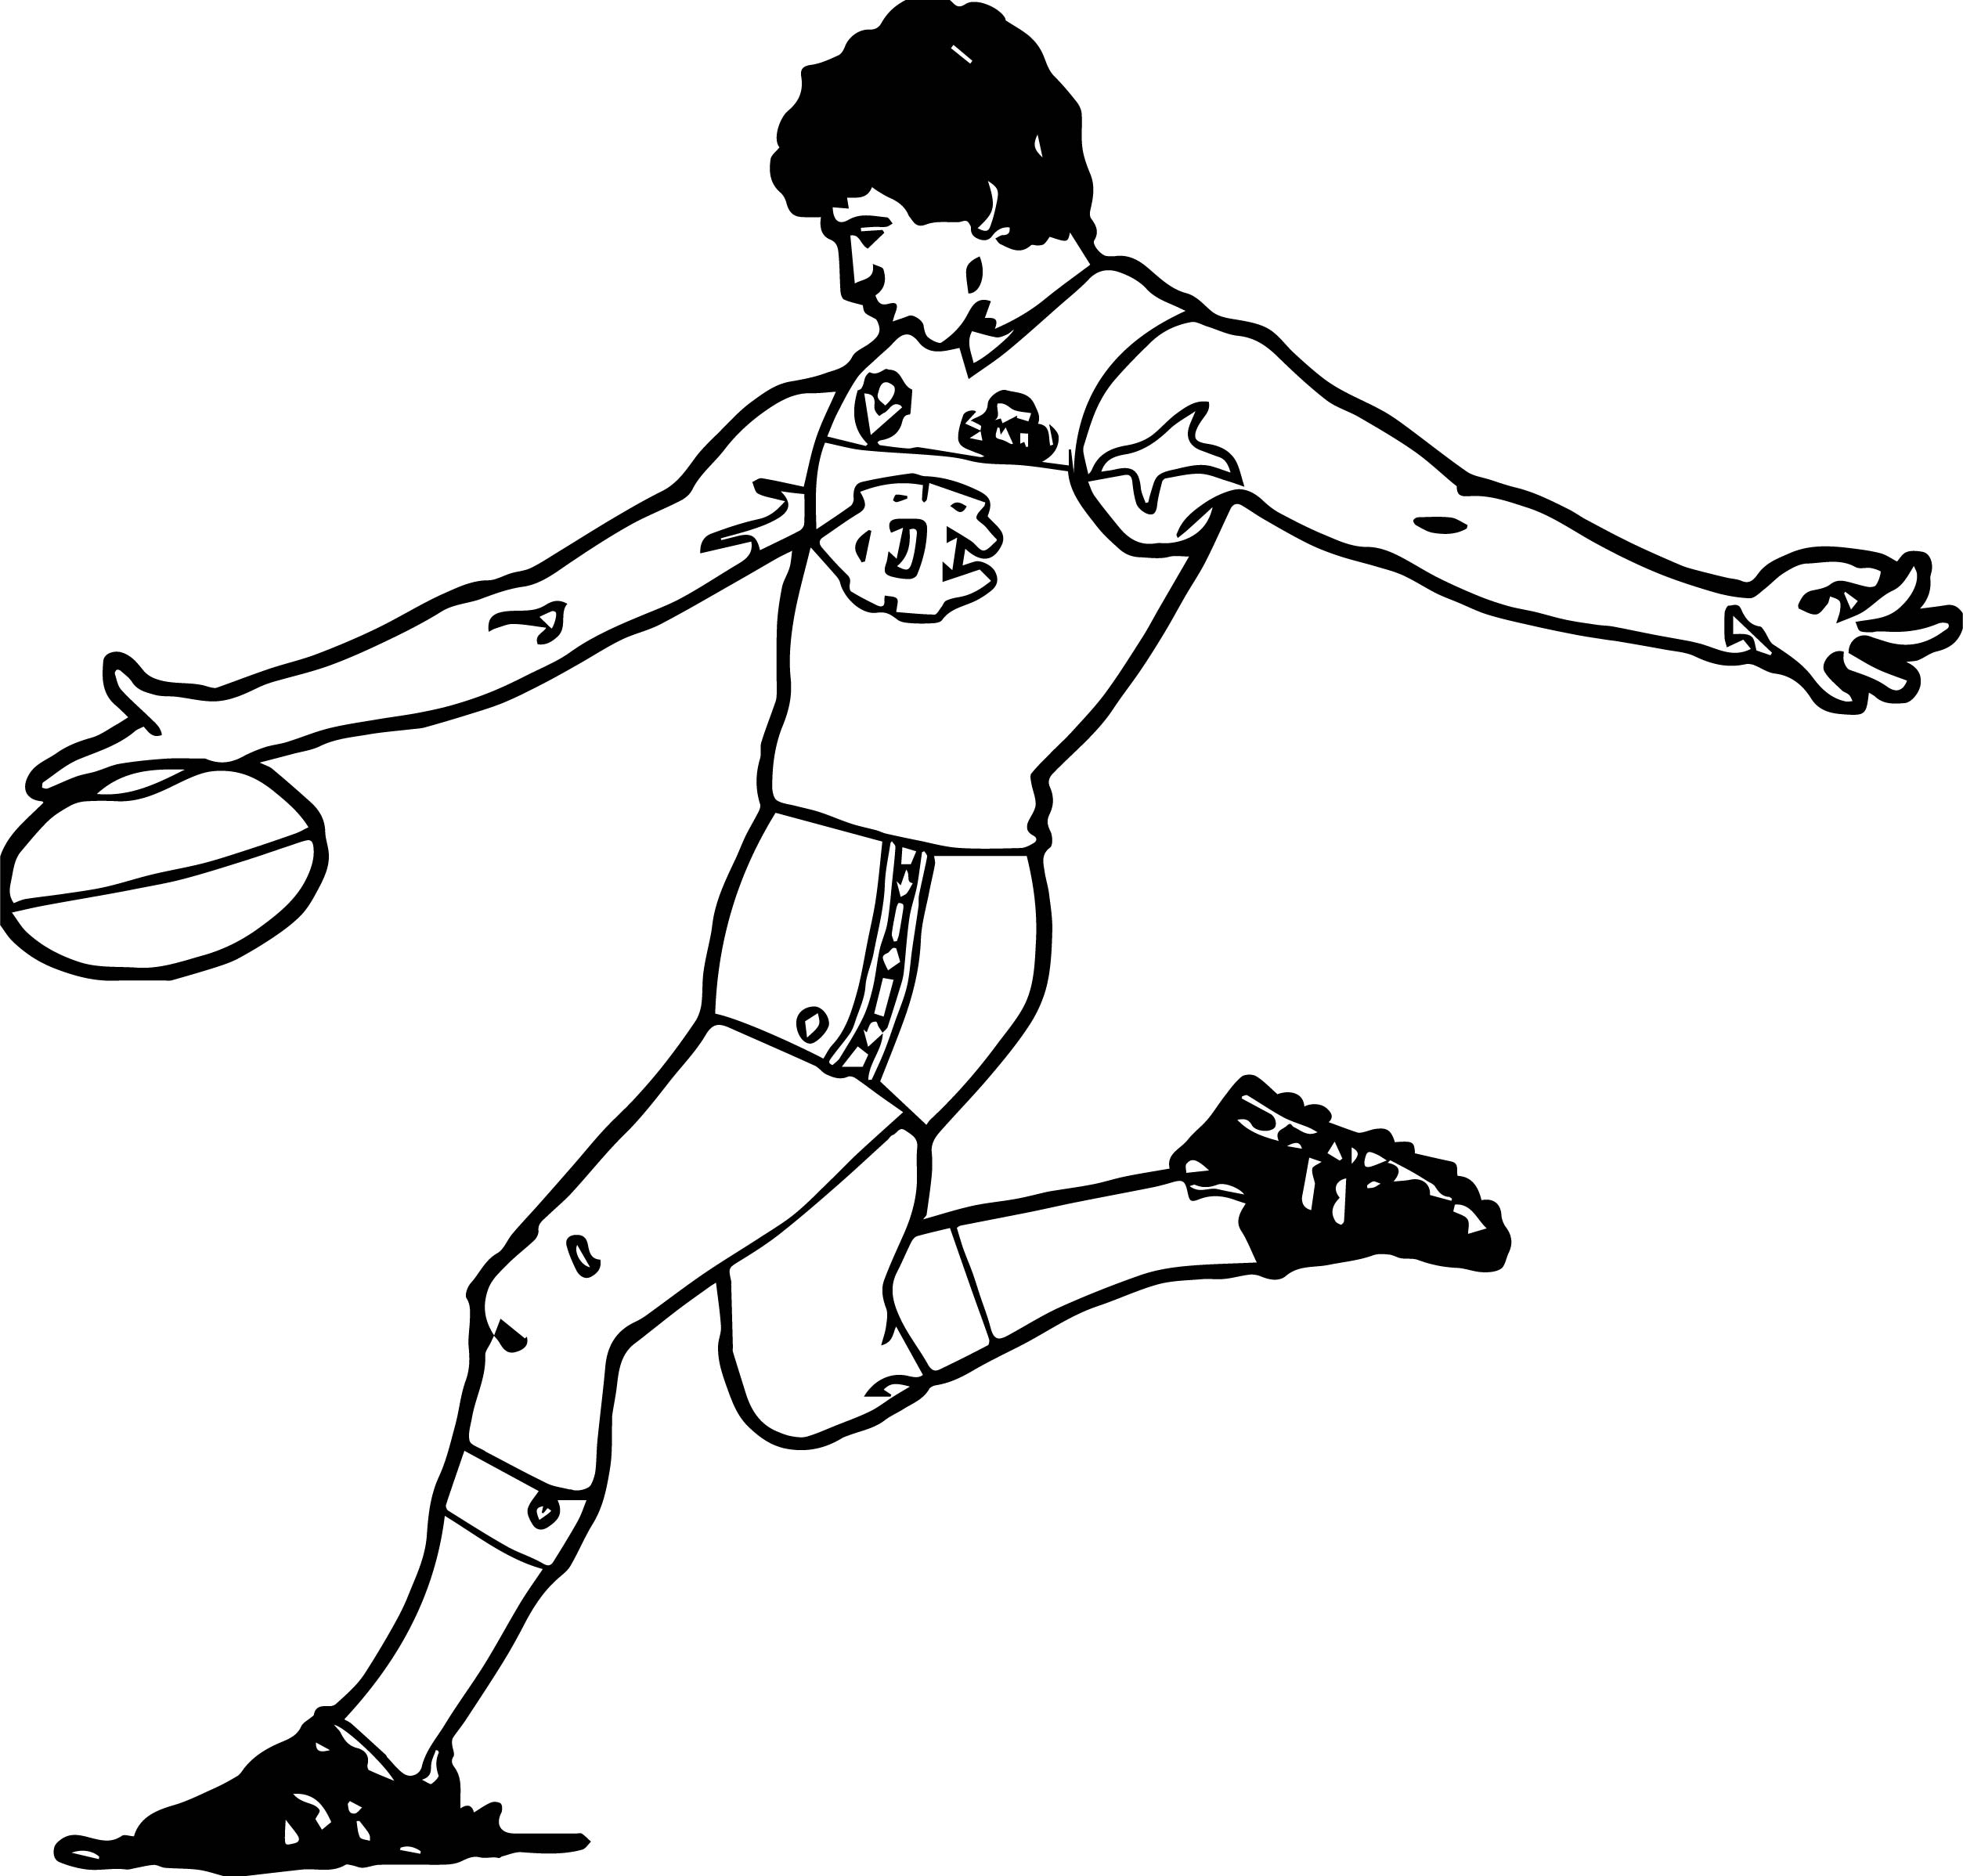 Running Player Coloring Page